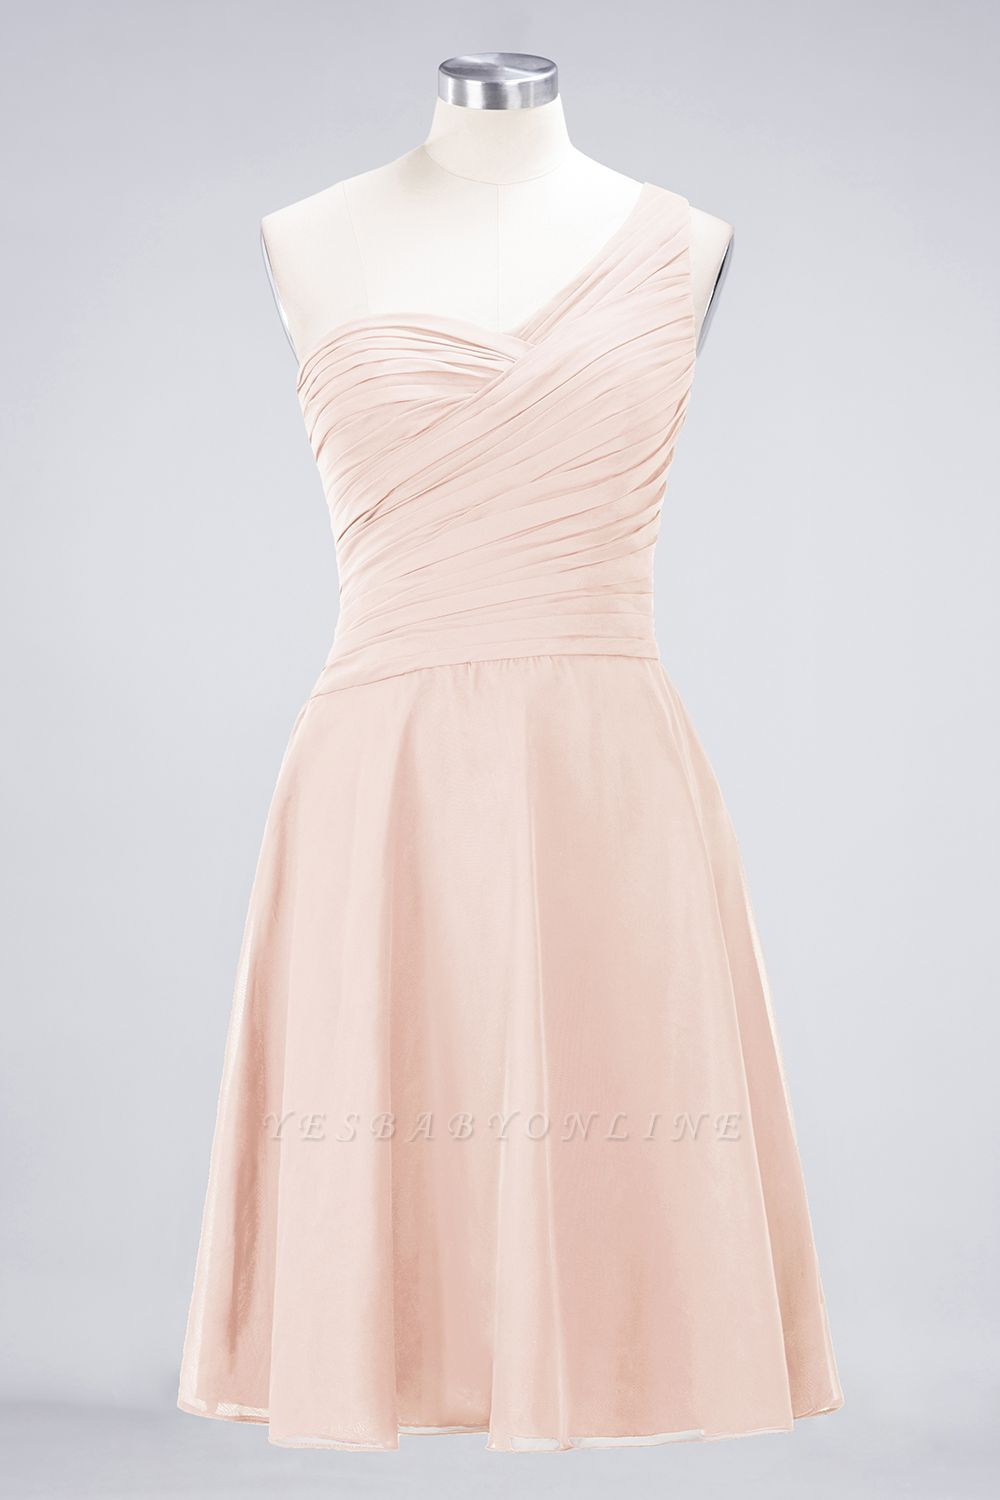 A-Line One-Shoulder Sweetheart Sleeveless Knee-Length  Bridesmaid Dress with Ruffles